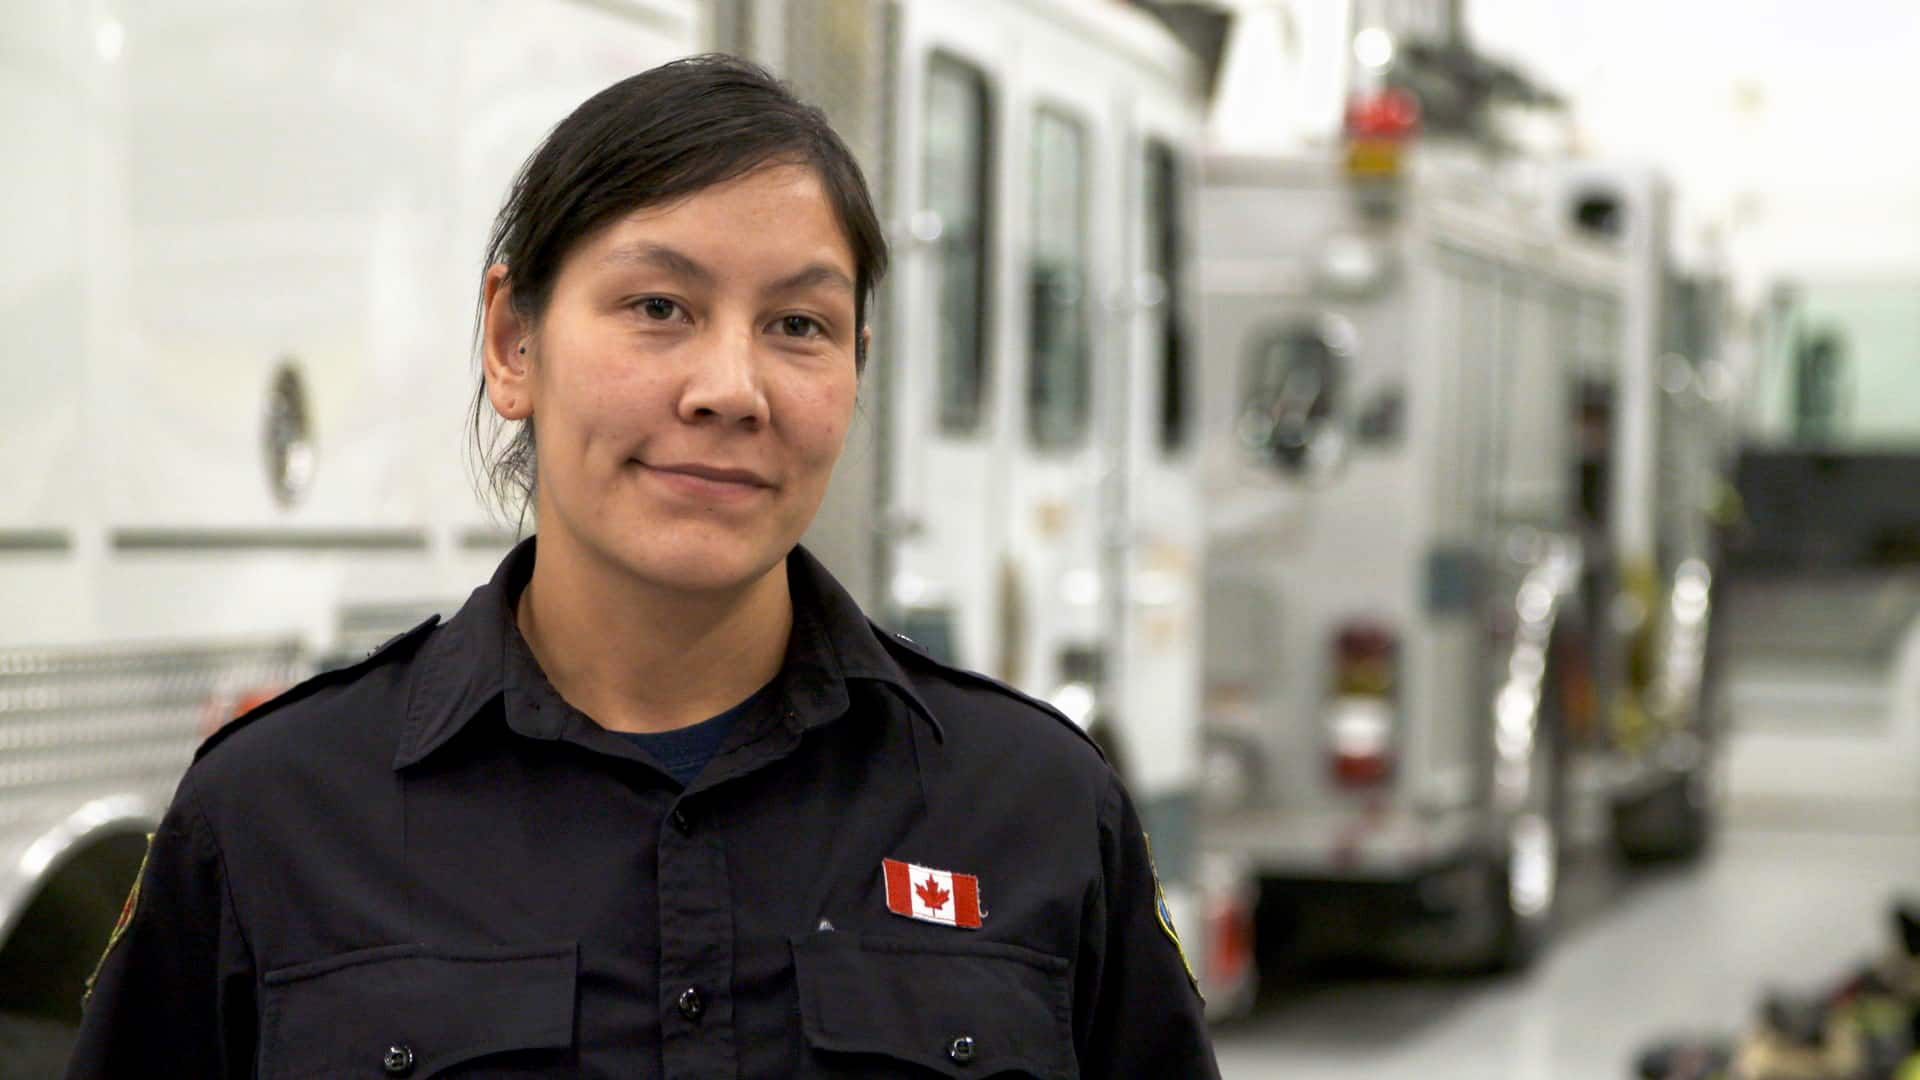 Meet Sarah Arngna'naaq: On-call firefighter and Crown prosecutor